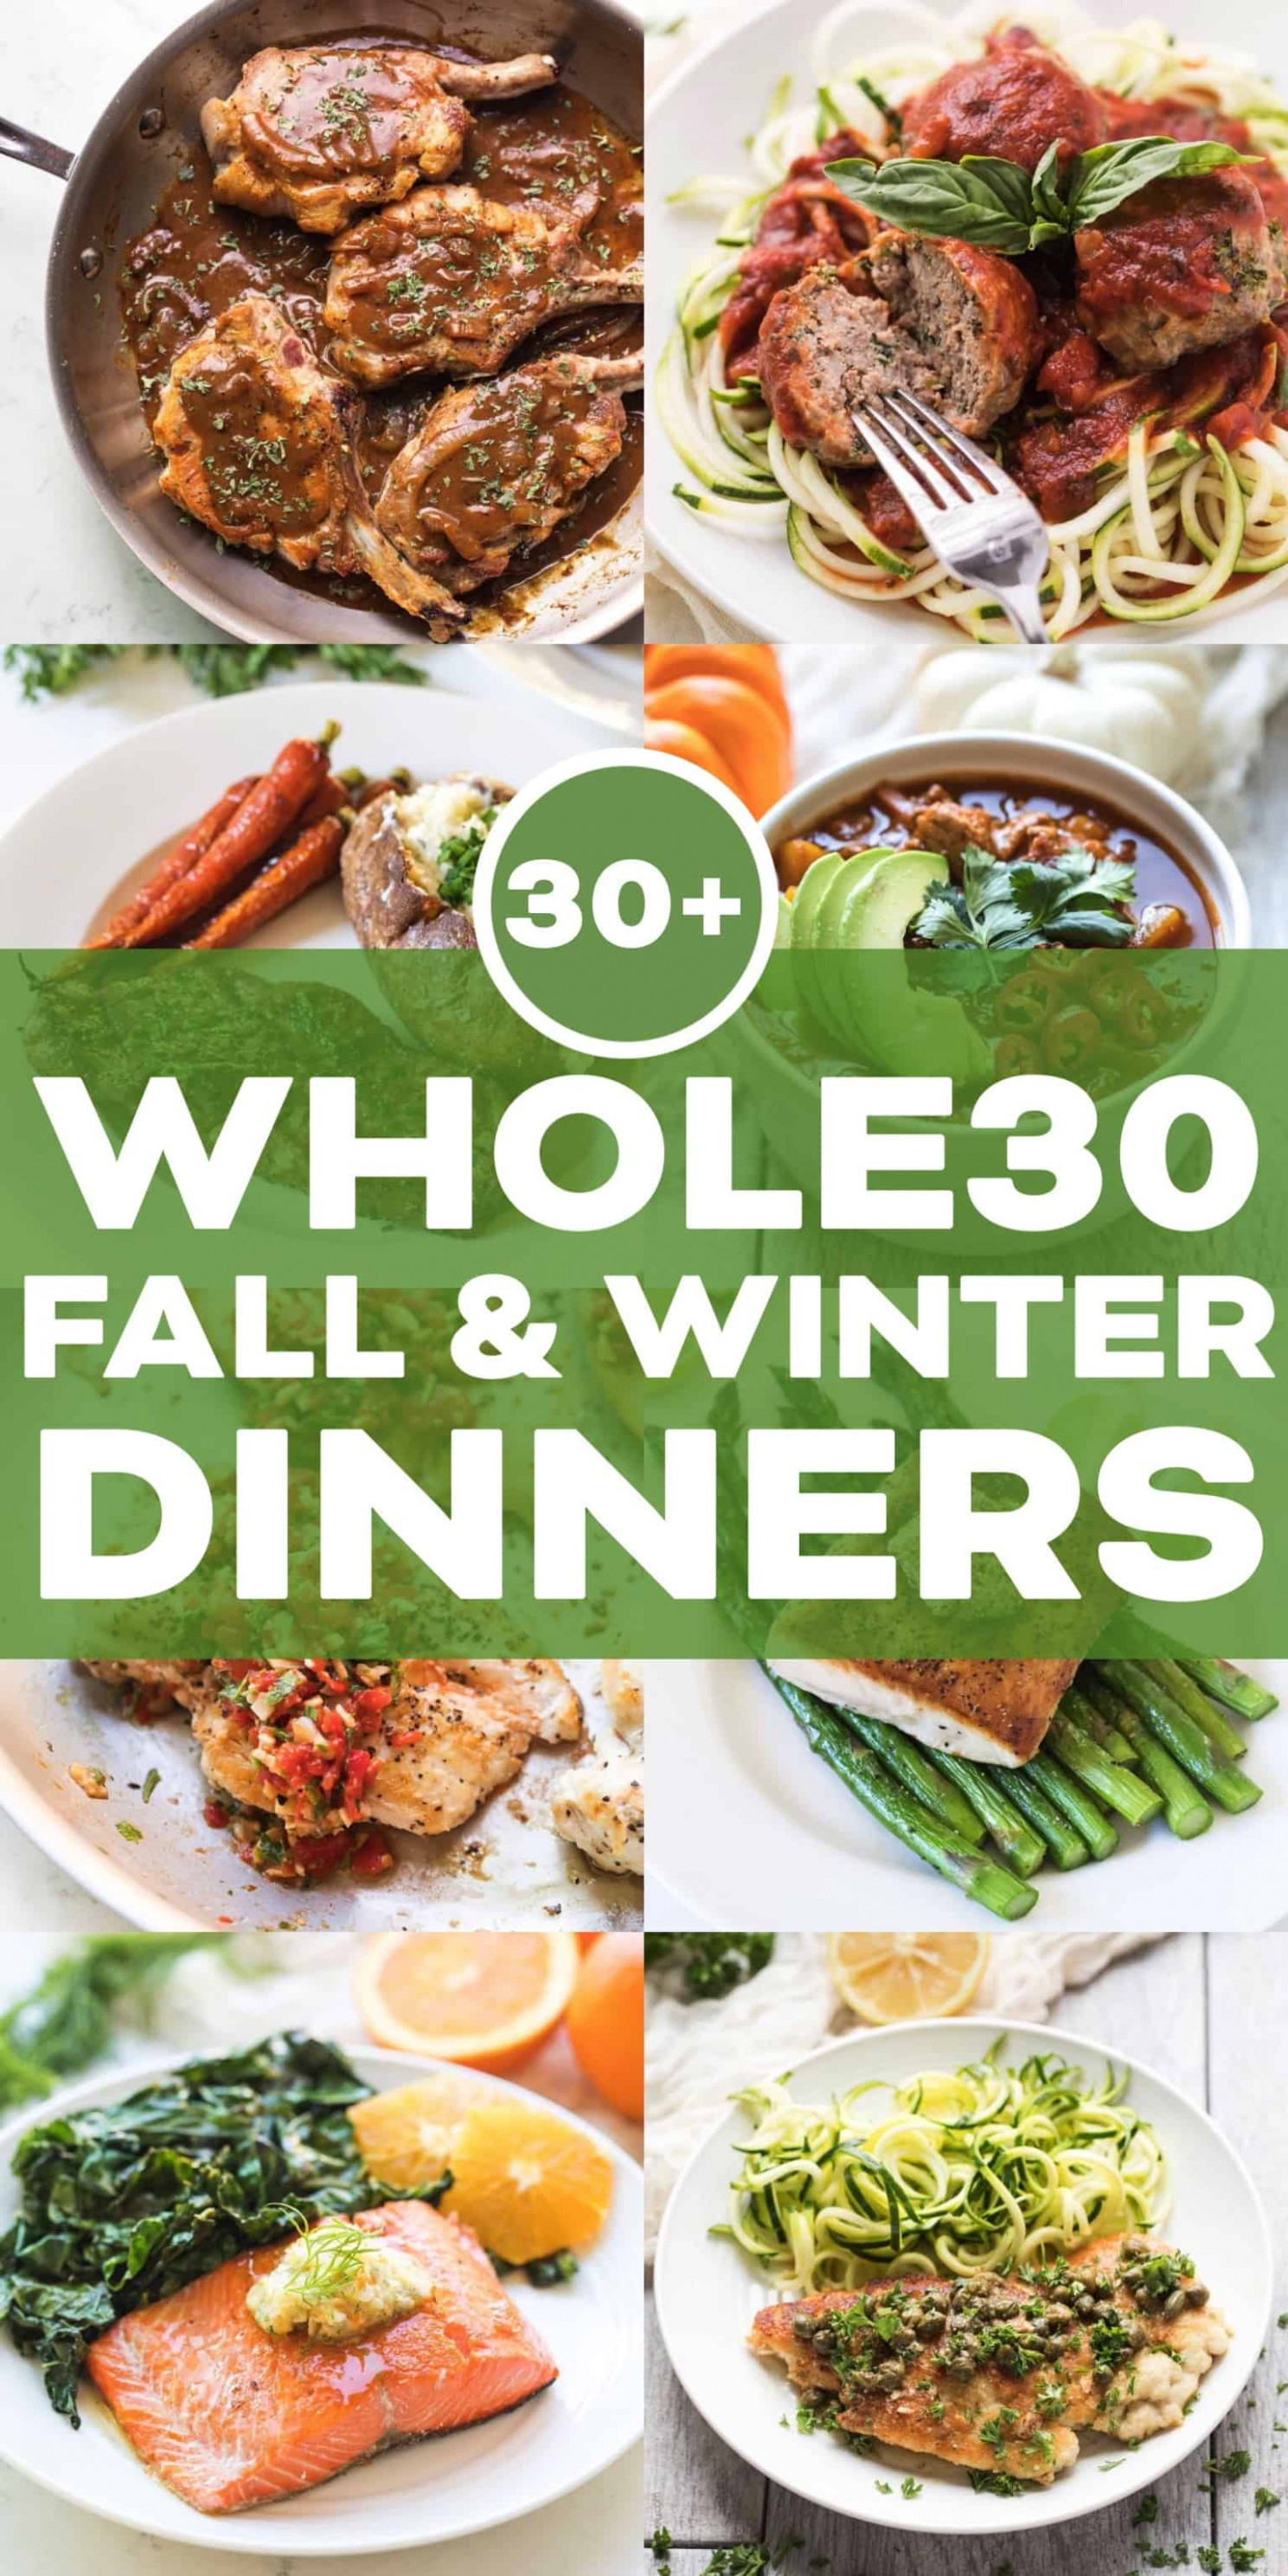 Whole10 Meal Plan :: 10+ Fall & Winter Dinner Recipes ...